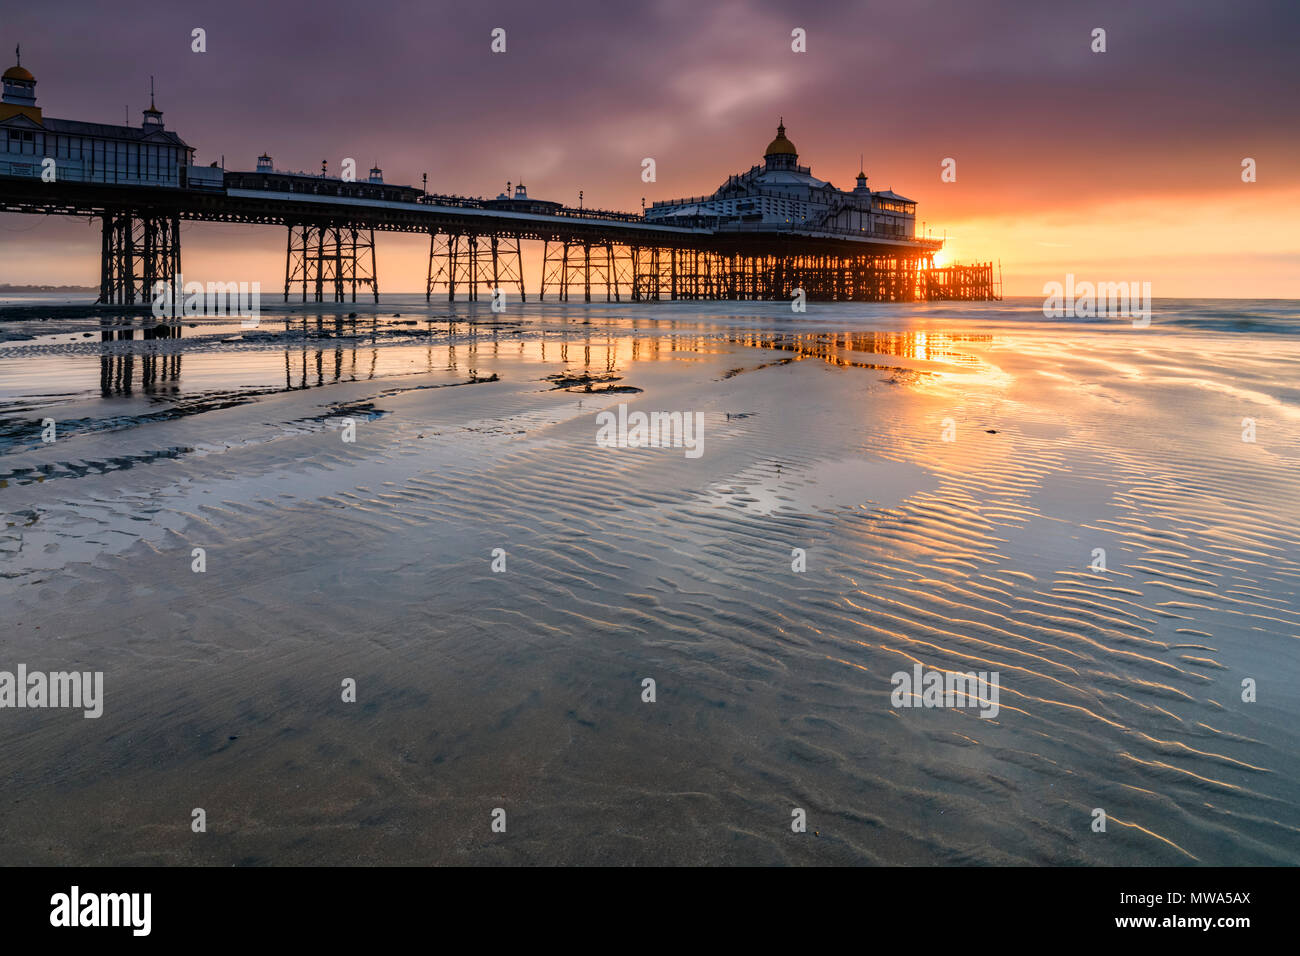 Eastbourne Pier en East Sussex capturó al amanecer. Imagen De Stock